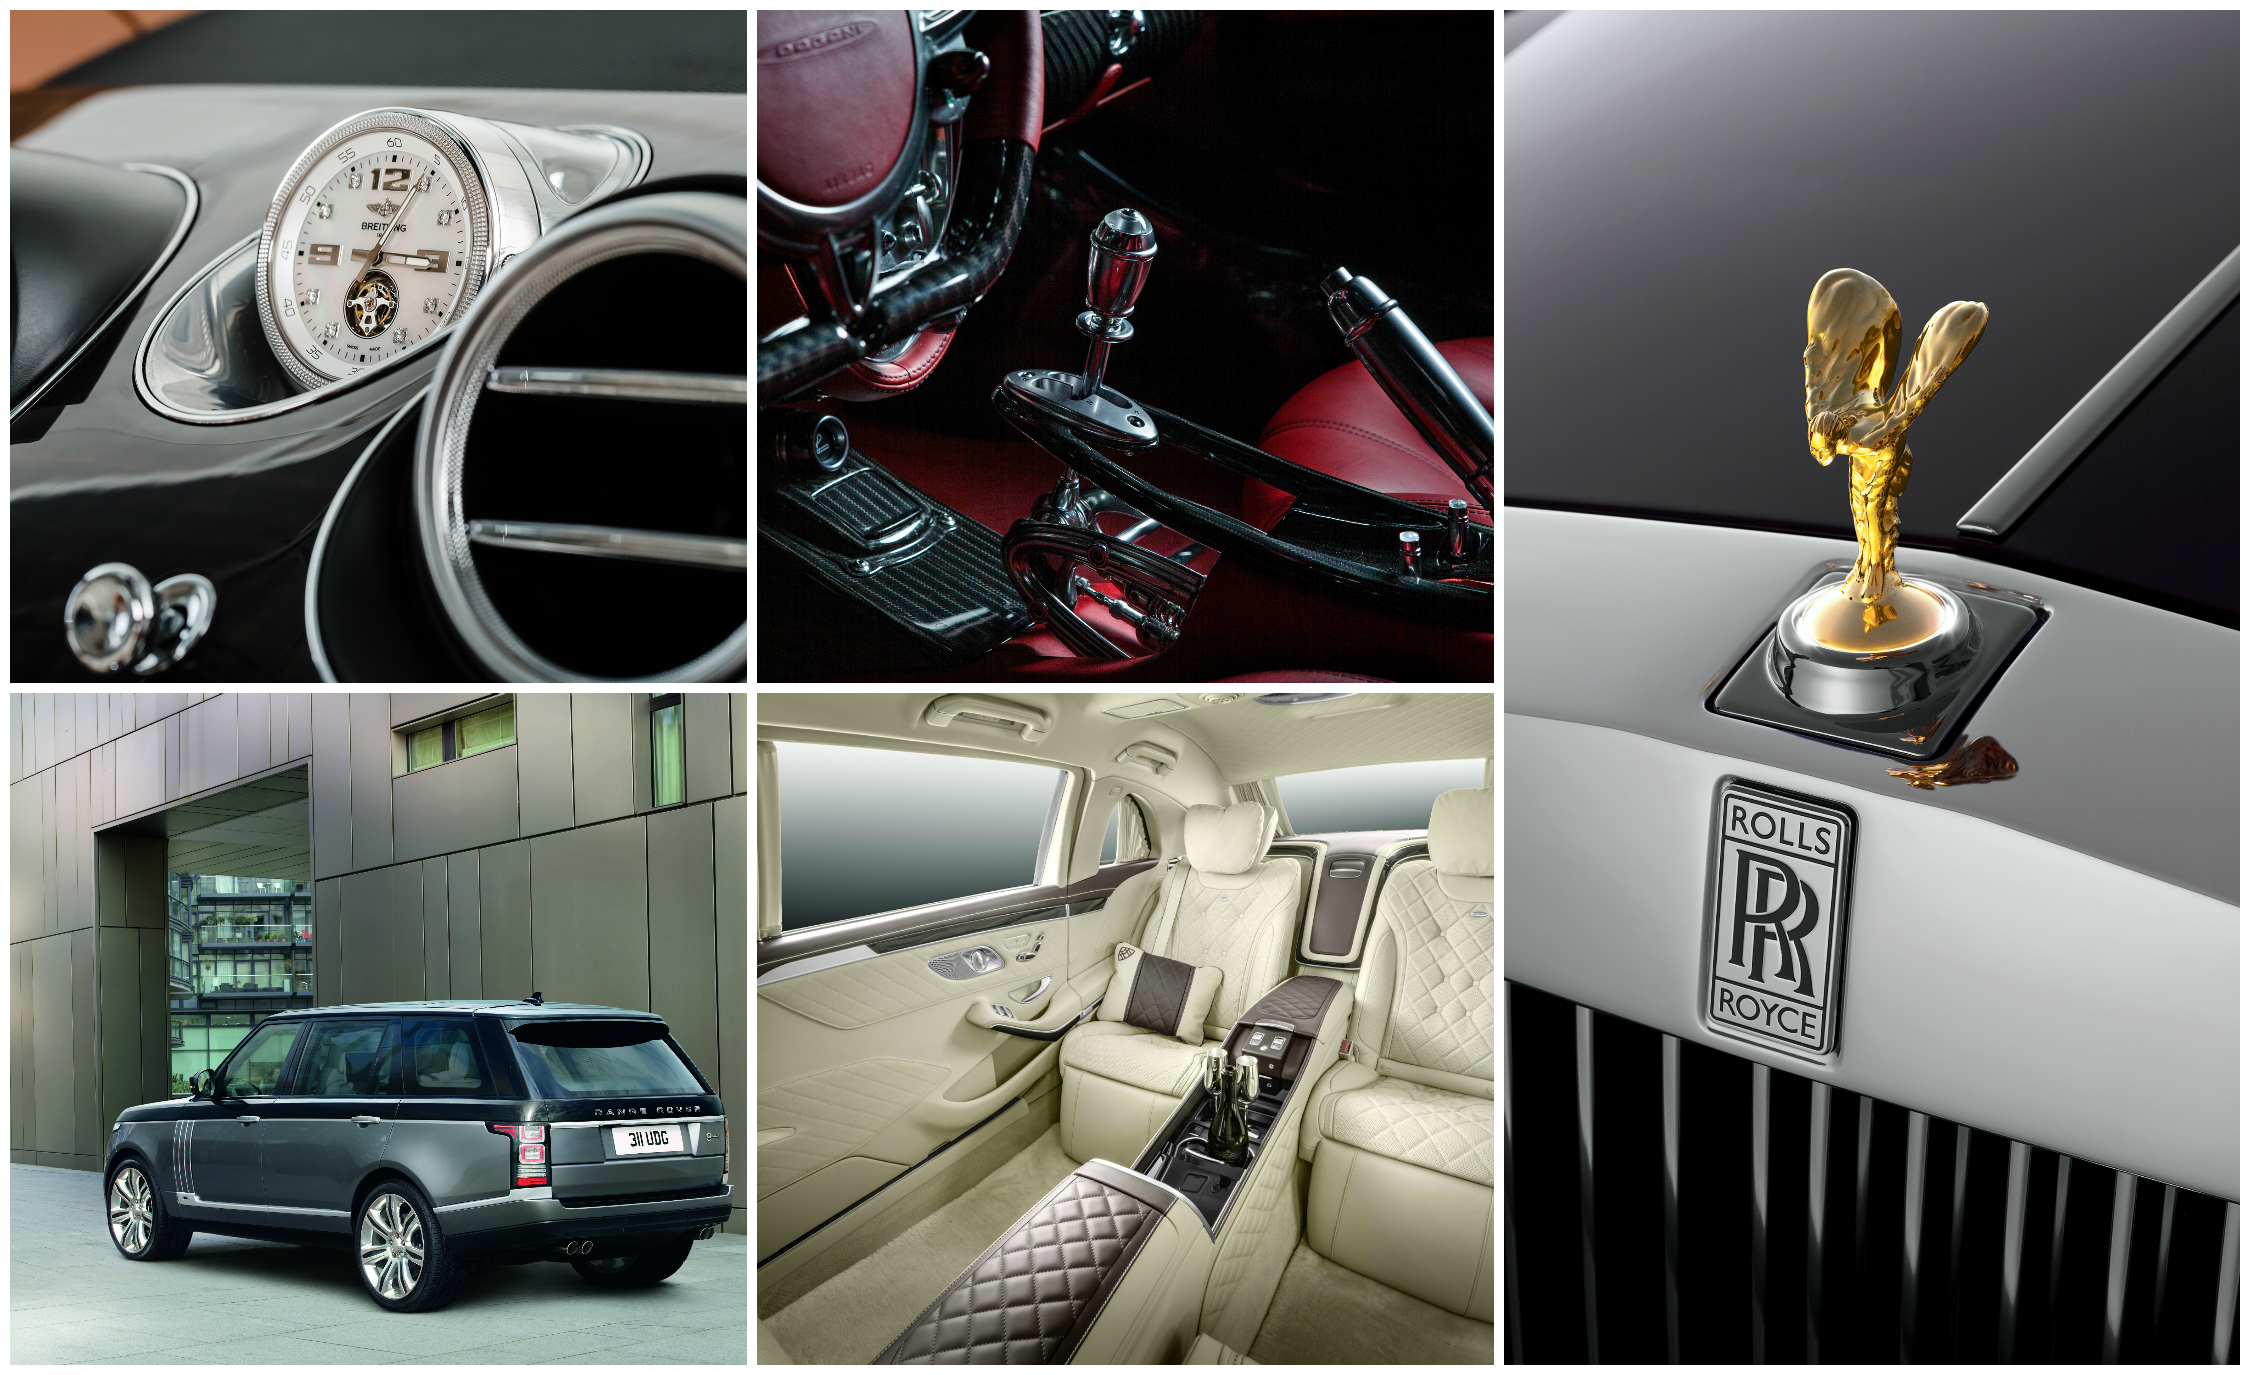 15 of the Most Indulgent Vehicle Options